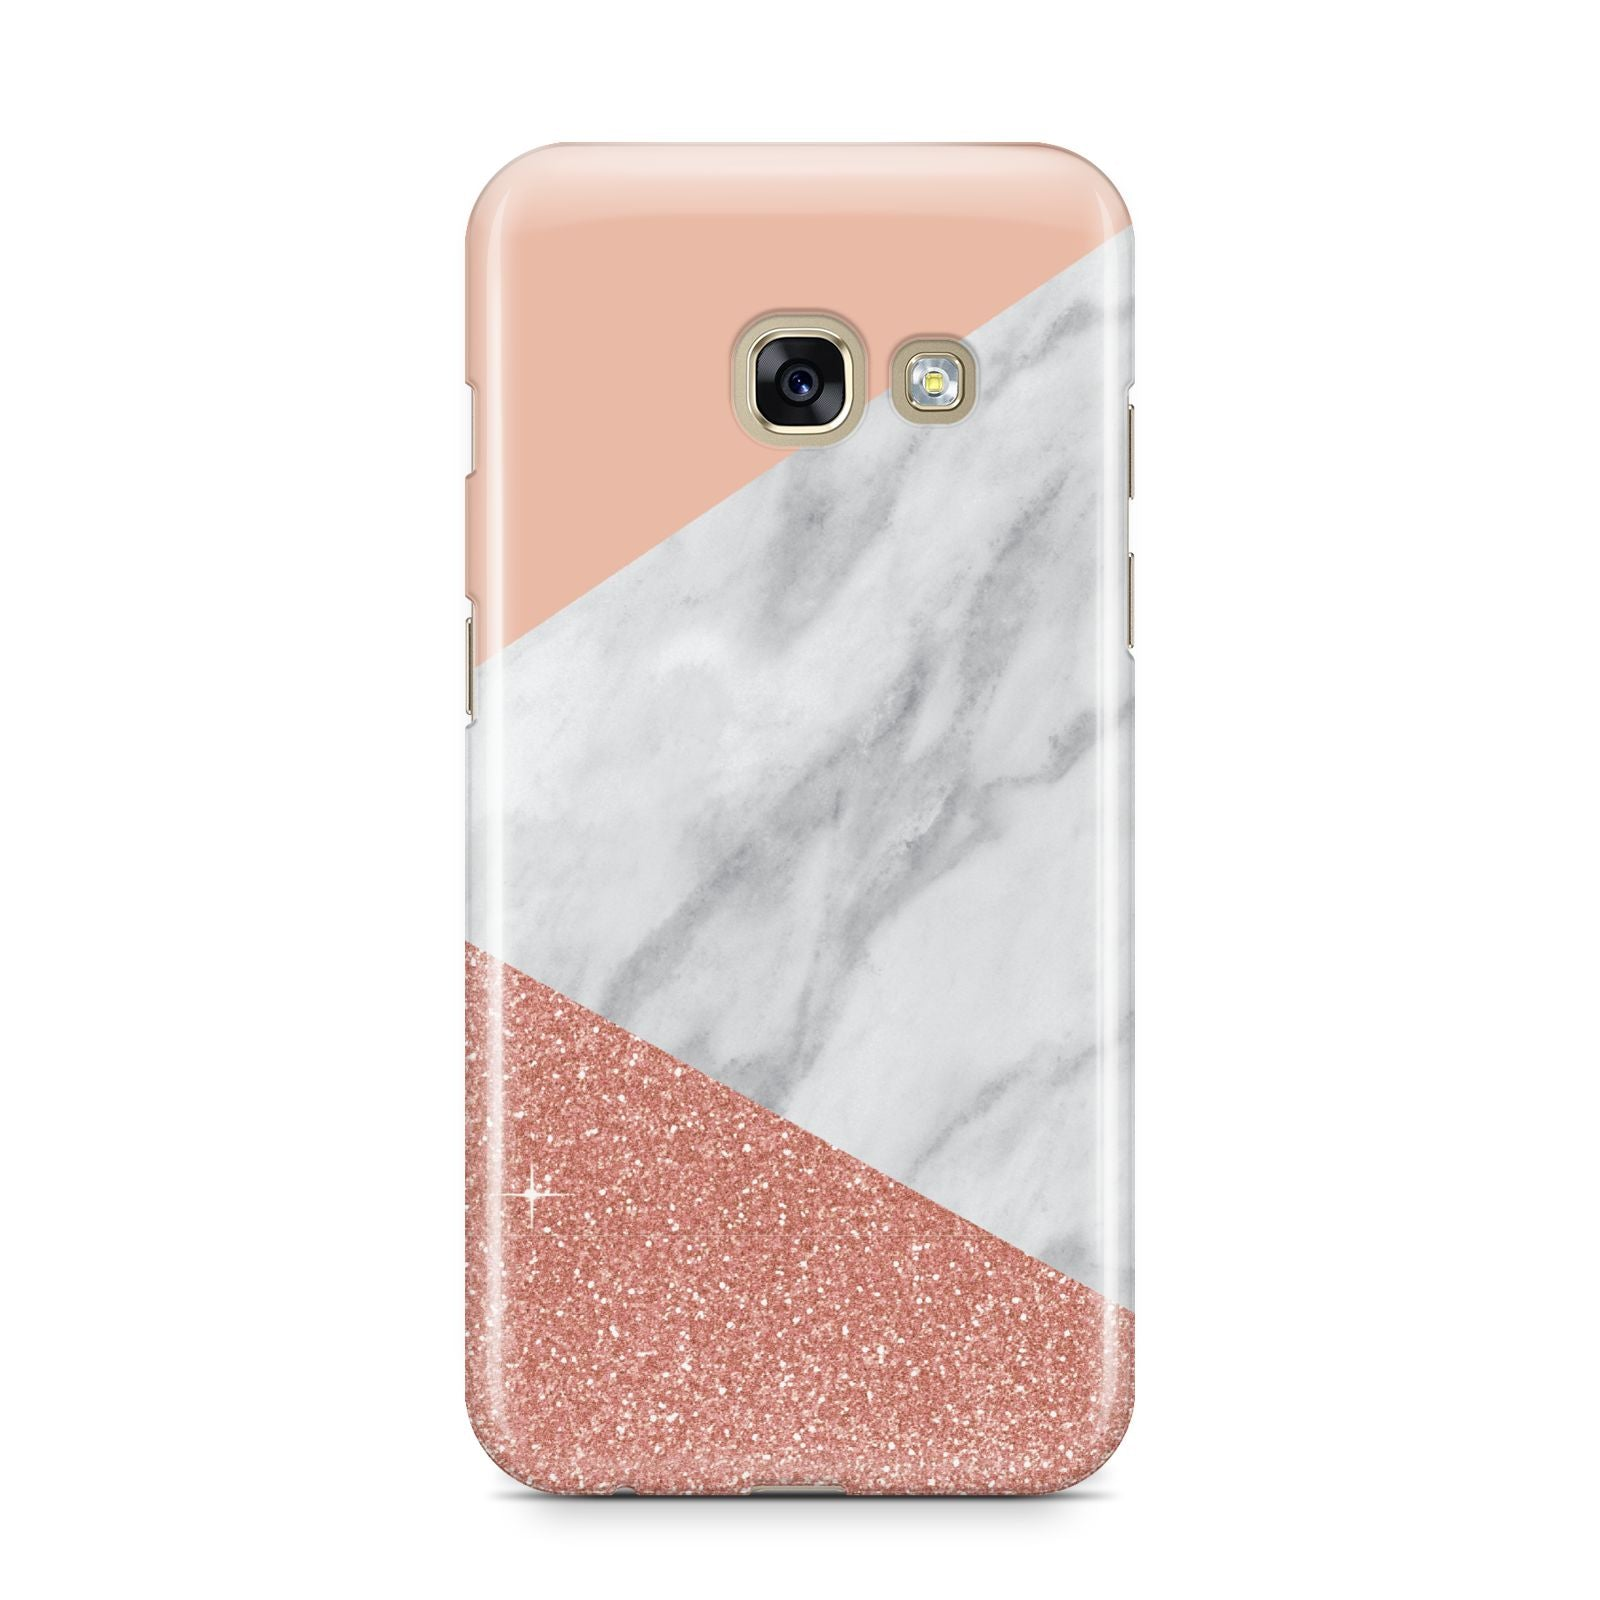 Marble White Rose Gold Samsung Galaxy A3 2017 Case on gold phone